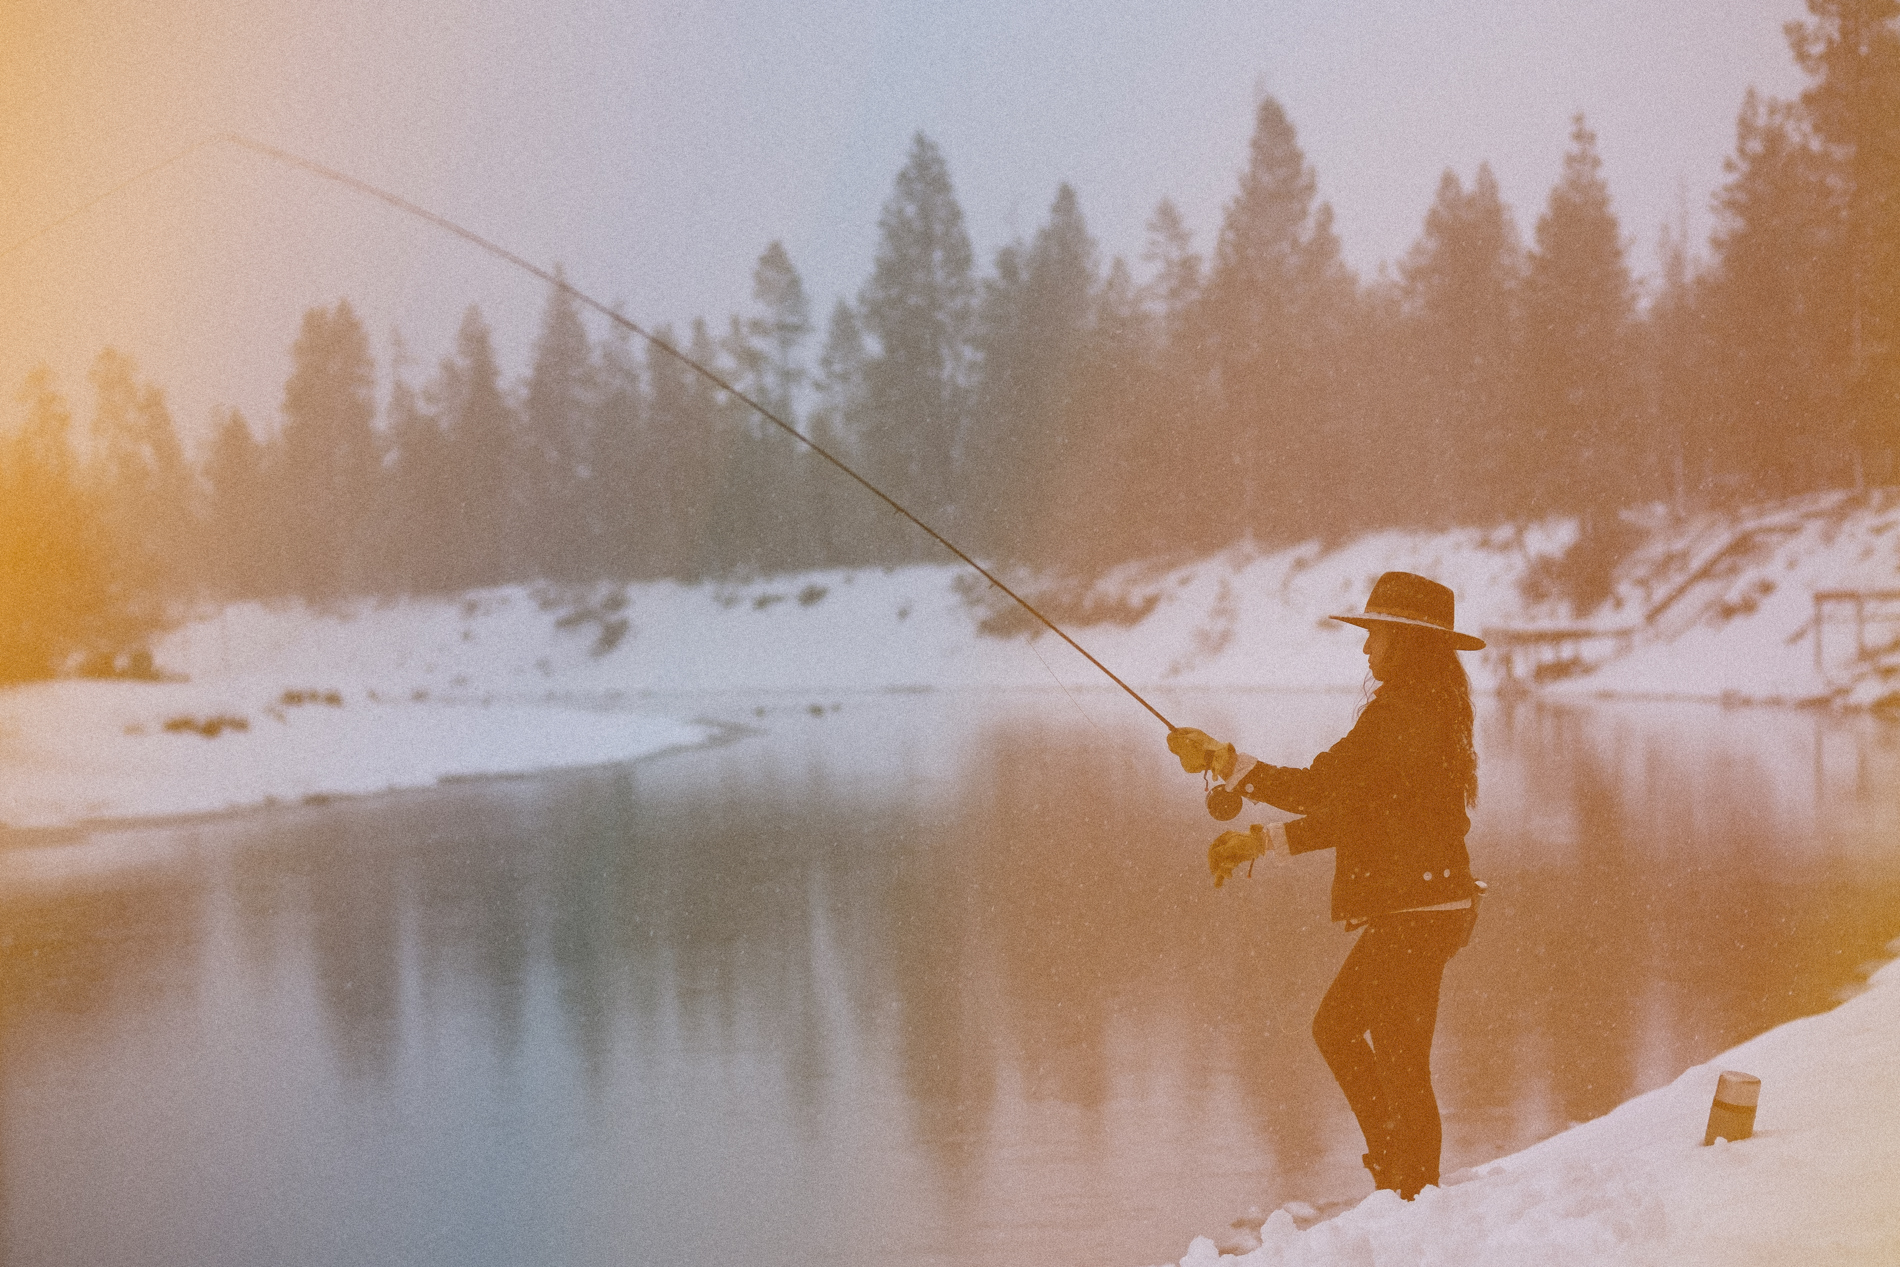 Winter_Sunriver_Fishing_Stanley_Stetson_001